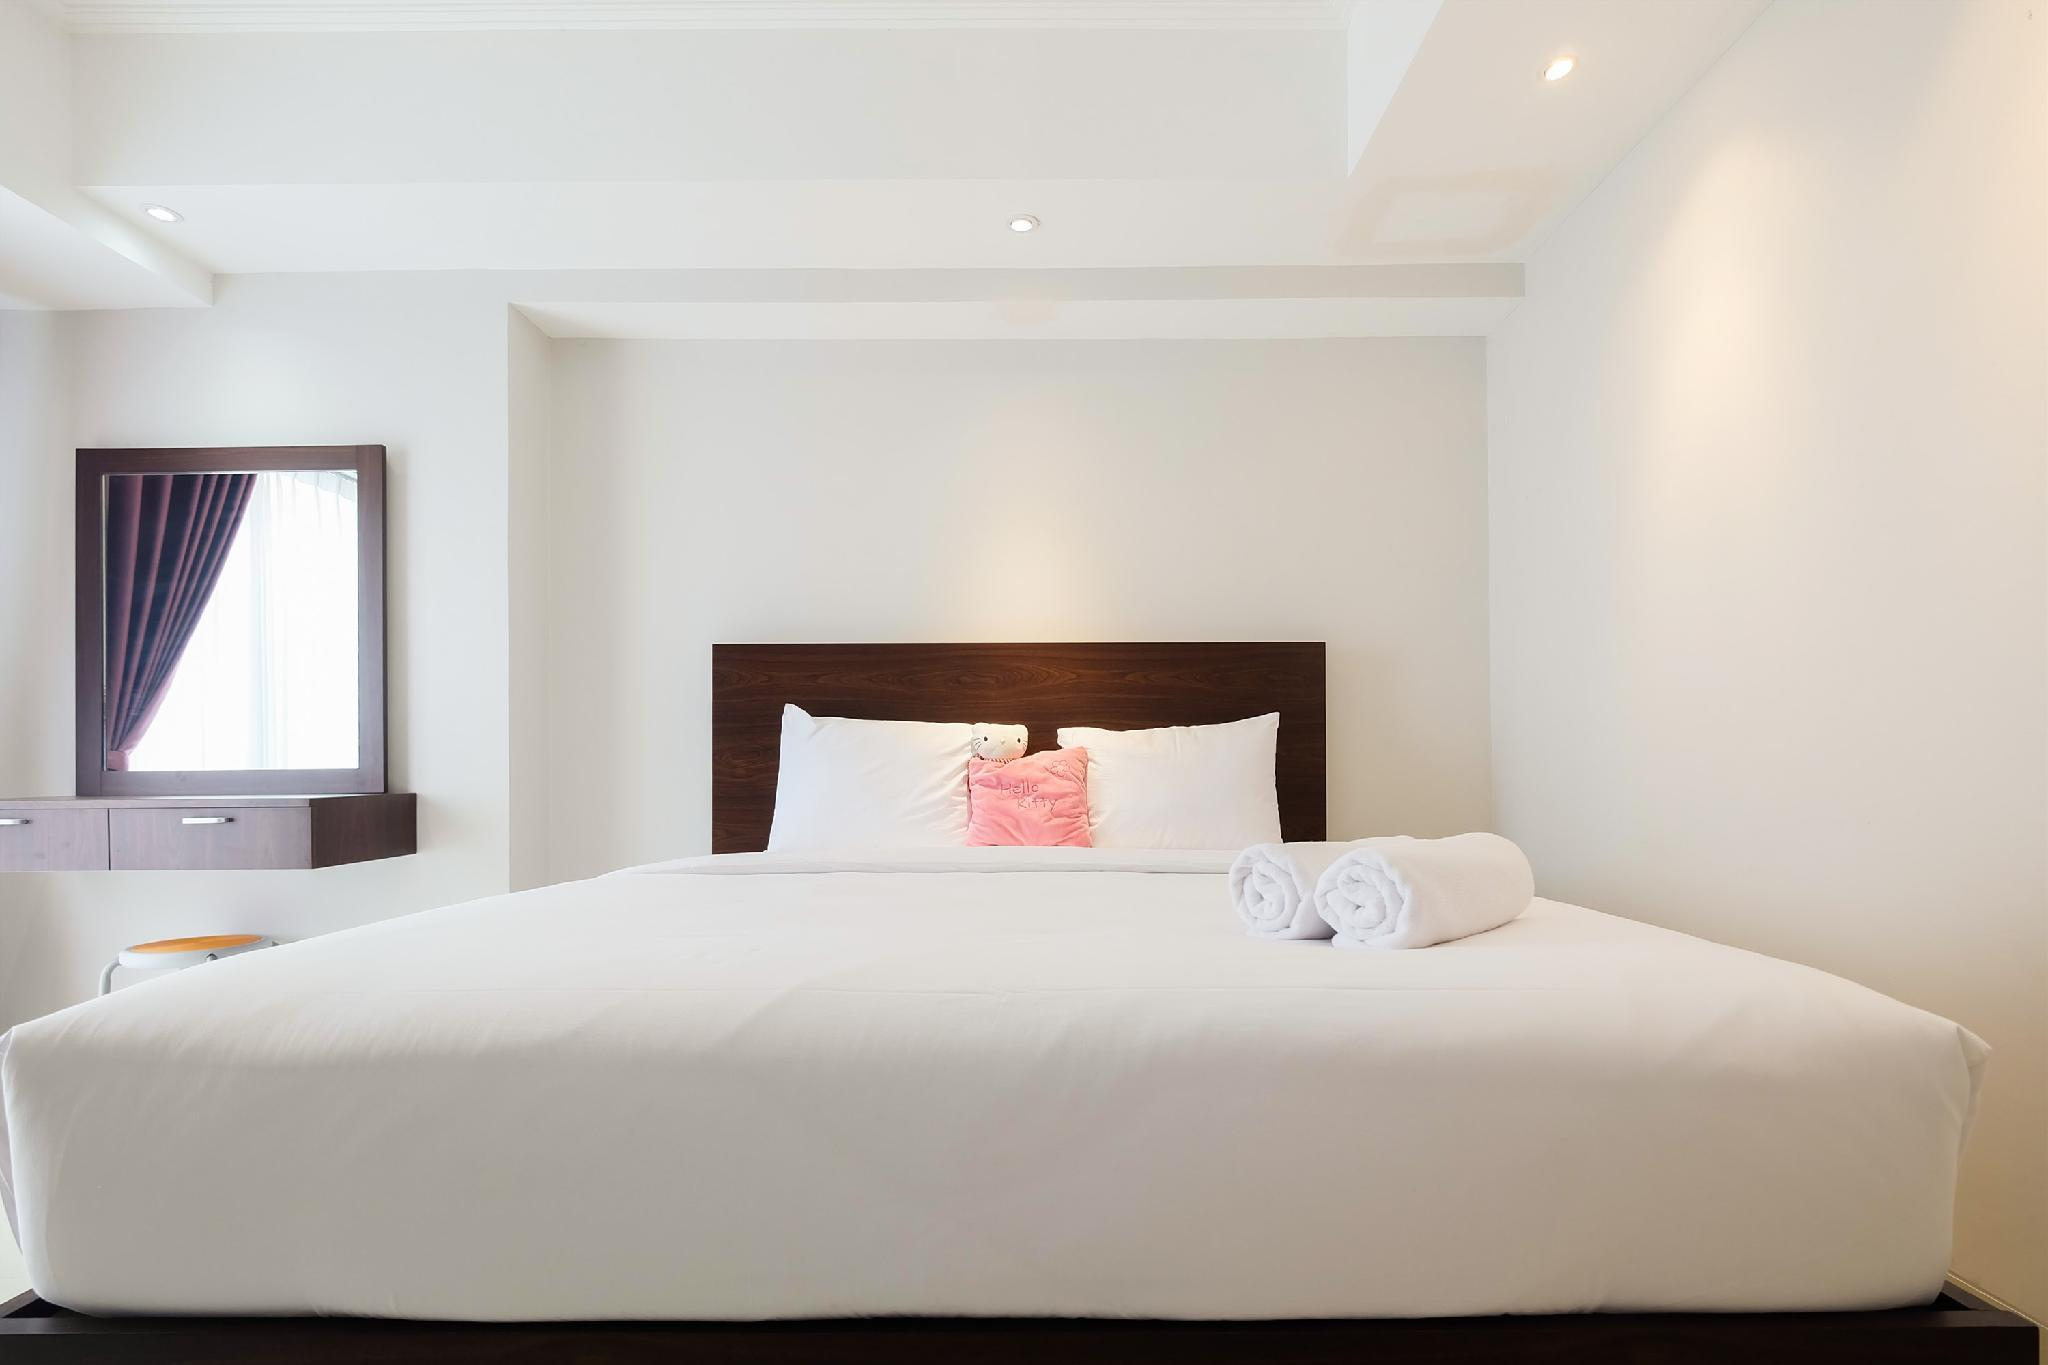 Classy 2BR The Mansion Apt Near JIEXPO By Travelio